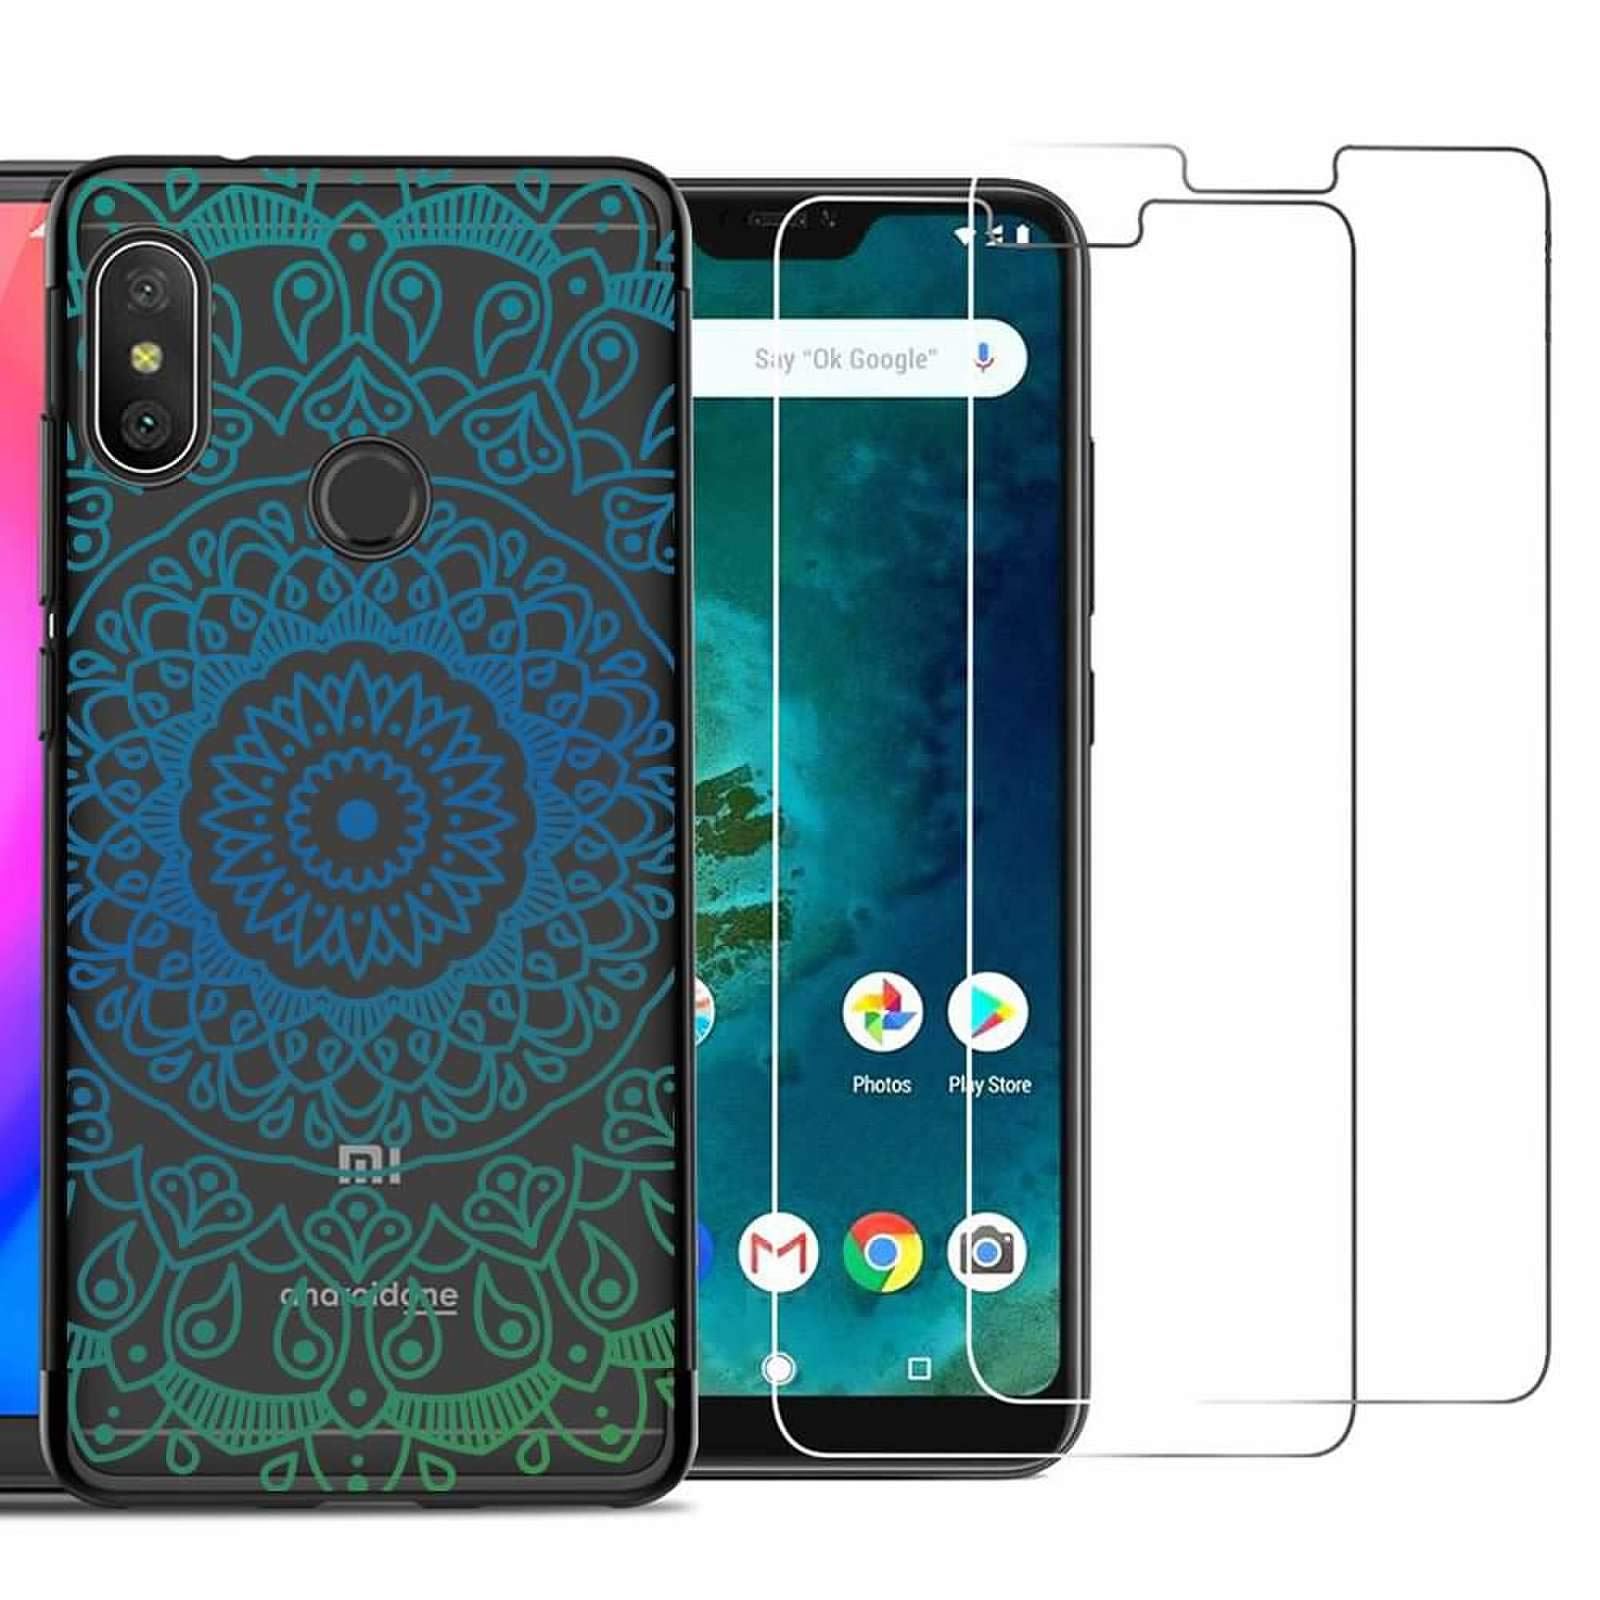 Xiaomi Redmi Note 6 Pro Case with 2 Pack Glass Screen Protector Phone Case for Men Women Girls Clear Soft TPU with Protective Bumper Cover Case for Xiaomi Redmi Note 6/Redmi Note 6 Pro-Mandala